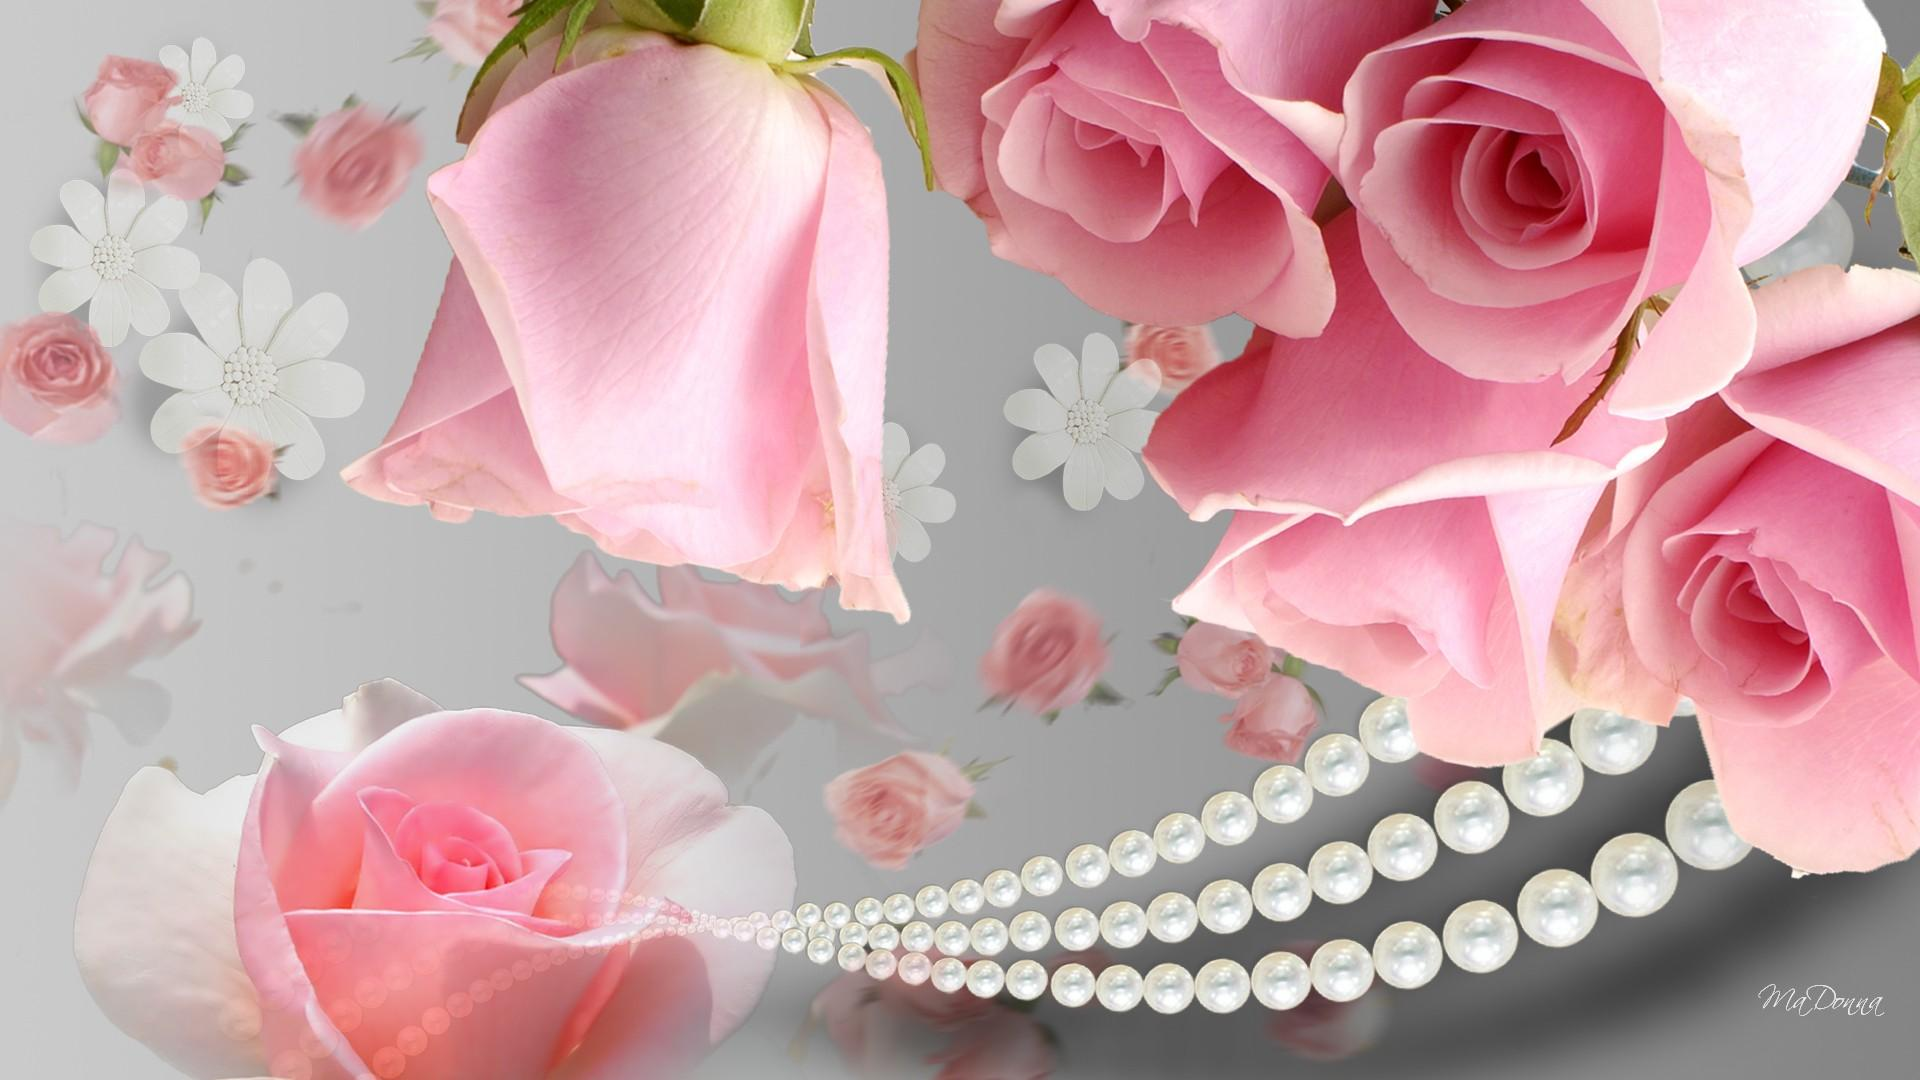 roses and pearls - photo #21